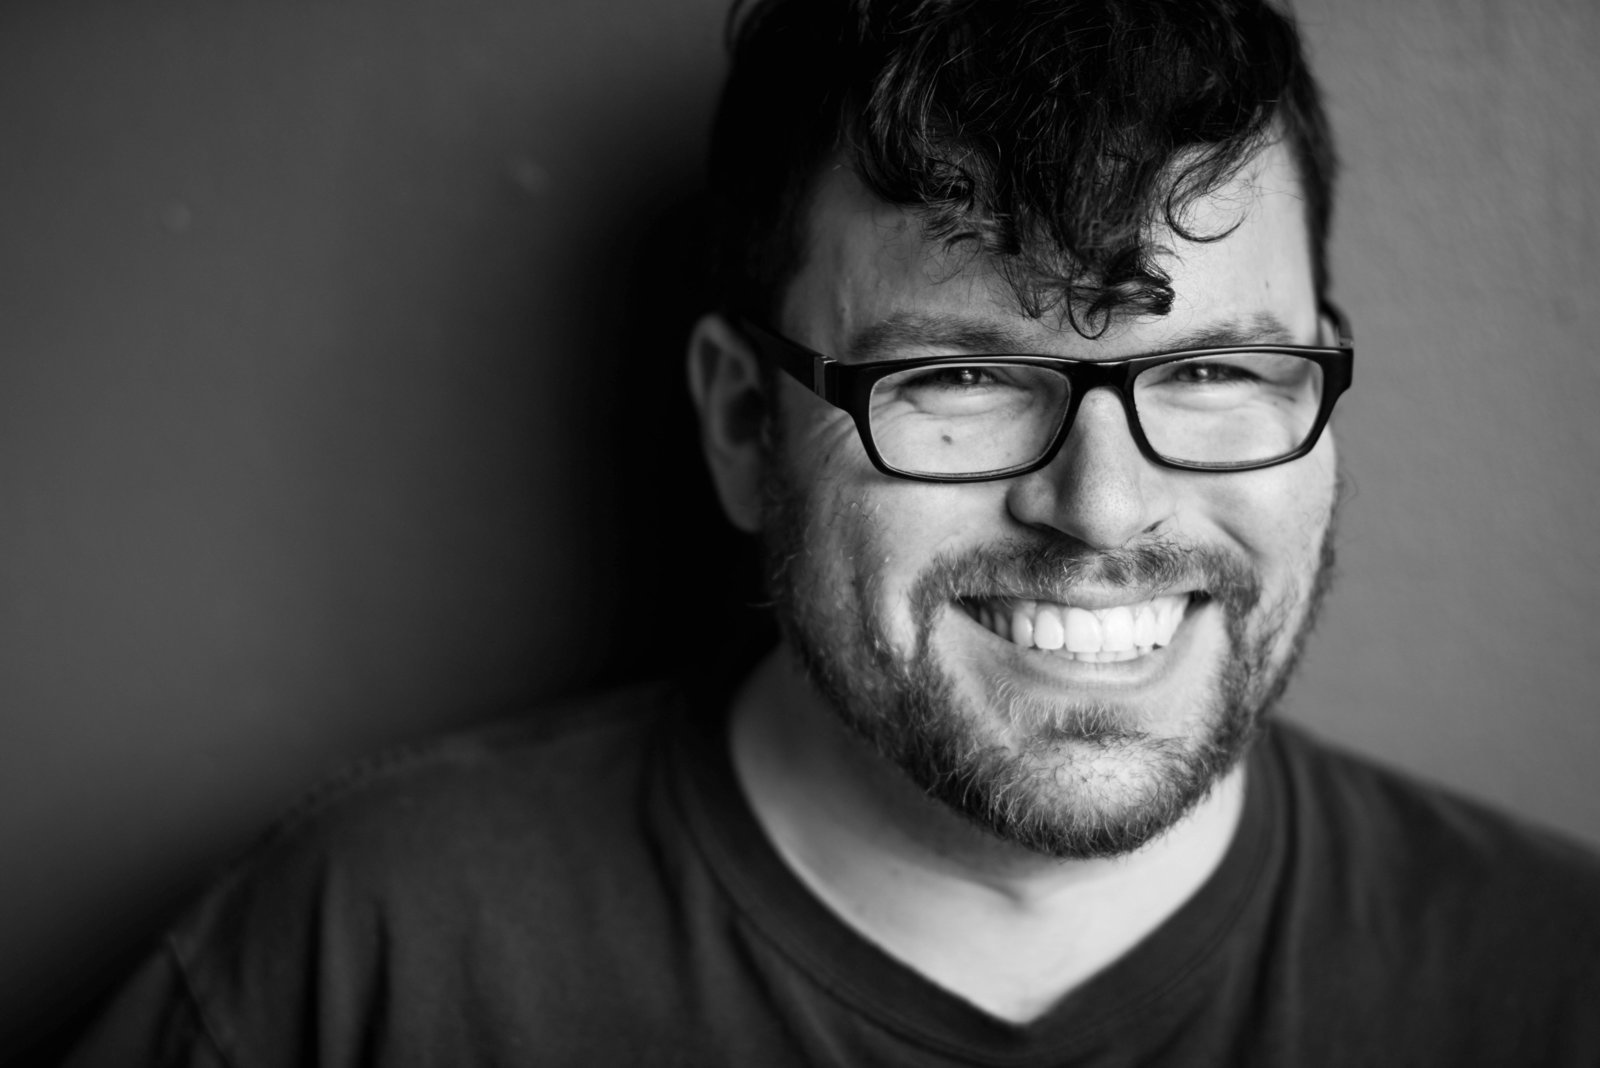 Black and white portrait of smiling, bearded man with glasses.